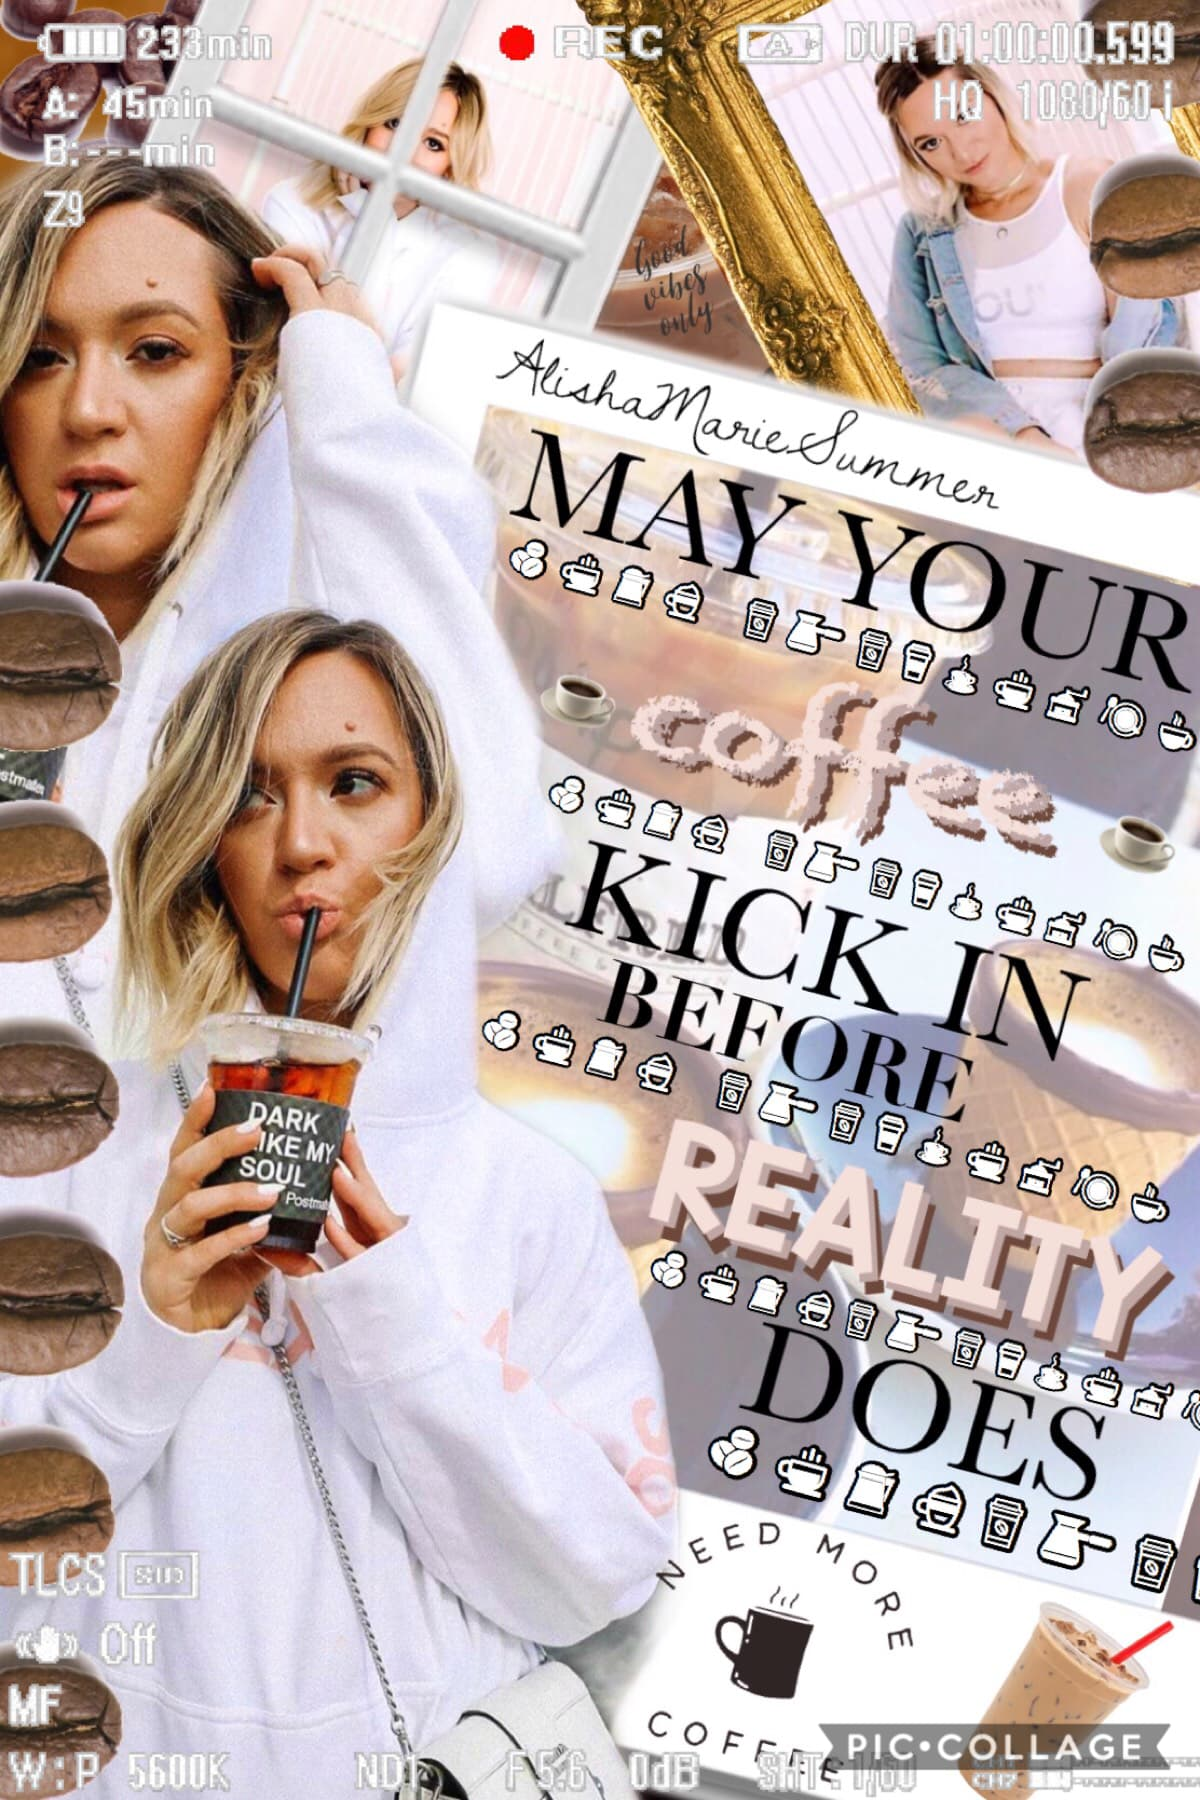 ☕️TaP☕️  I can't thank y'all enough for supporting me and everything I do. I guess my last qotd would have been better for this one 🤦🏼‍♀️😂  QOTD: Glee or Pretty Little Liars?  AOTD: Pretty Little Liars